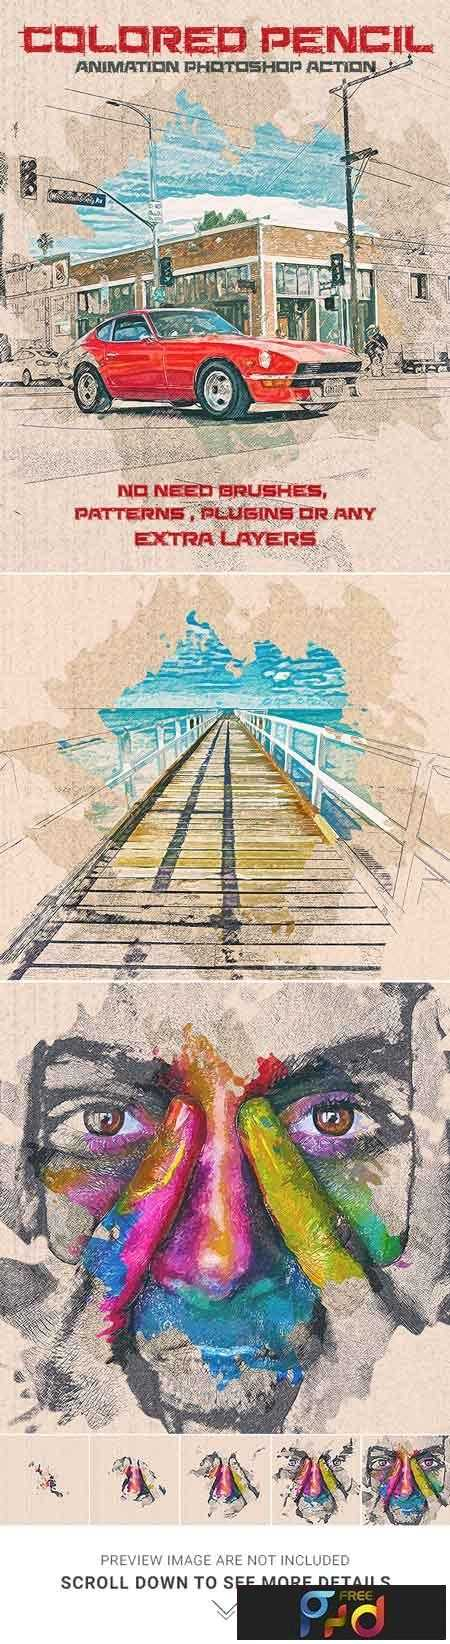 1808290 Colored Pencil Animation Photoshop Action 22139552